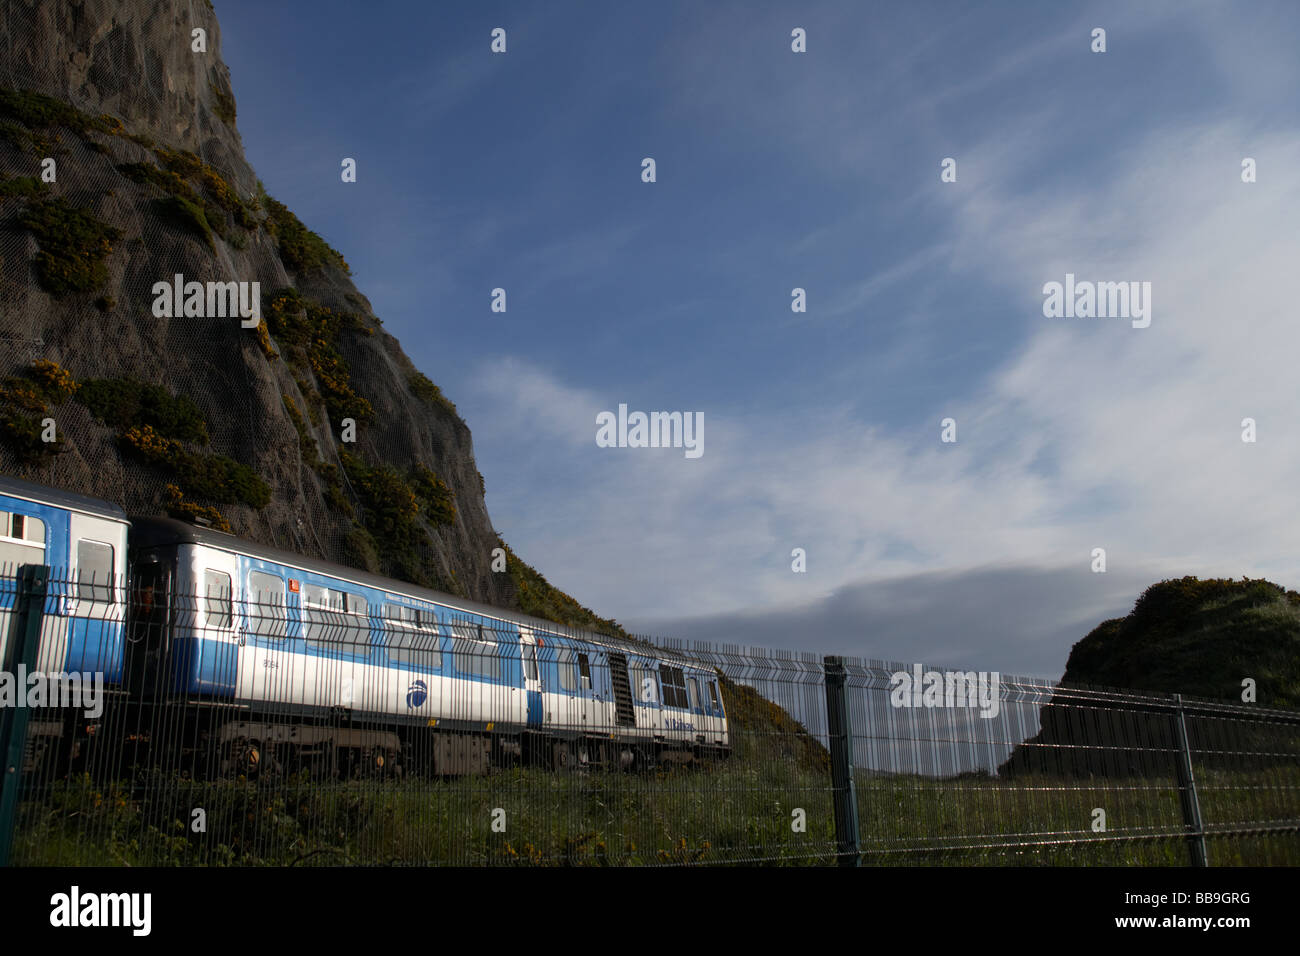 northern ireland railways train travelling past white head rocks in whitehead on the belfast to larne train route - Stock Image